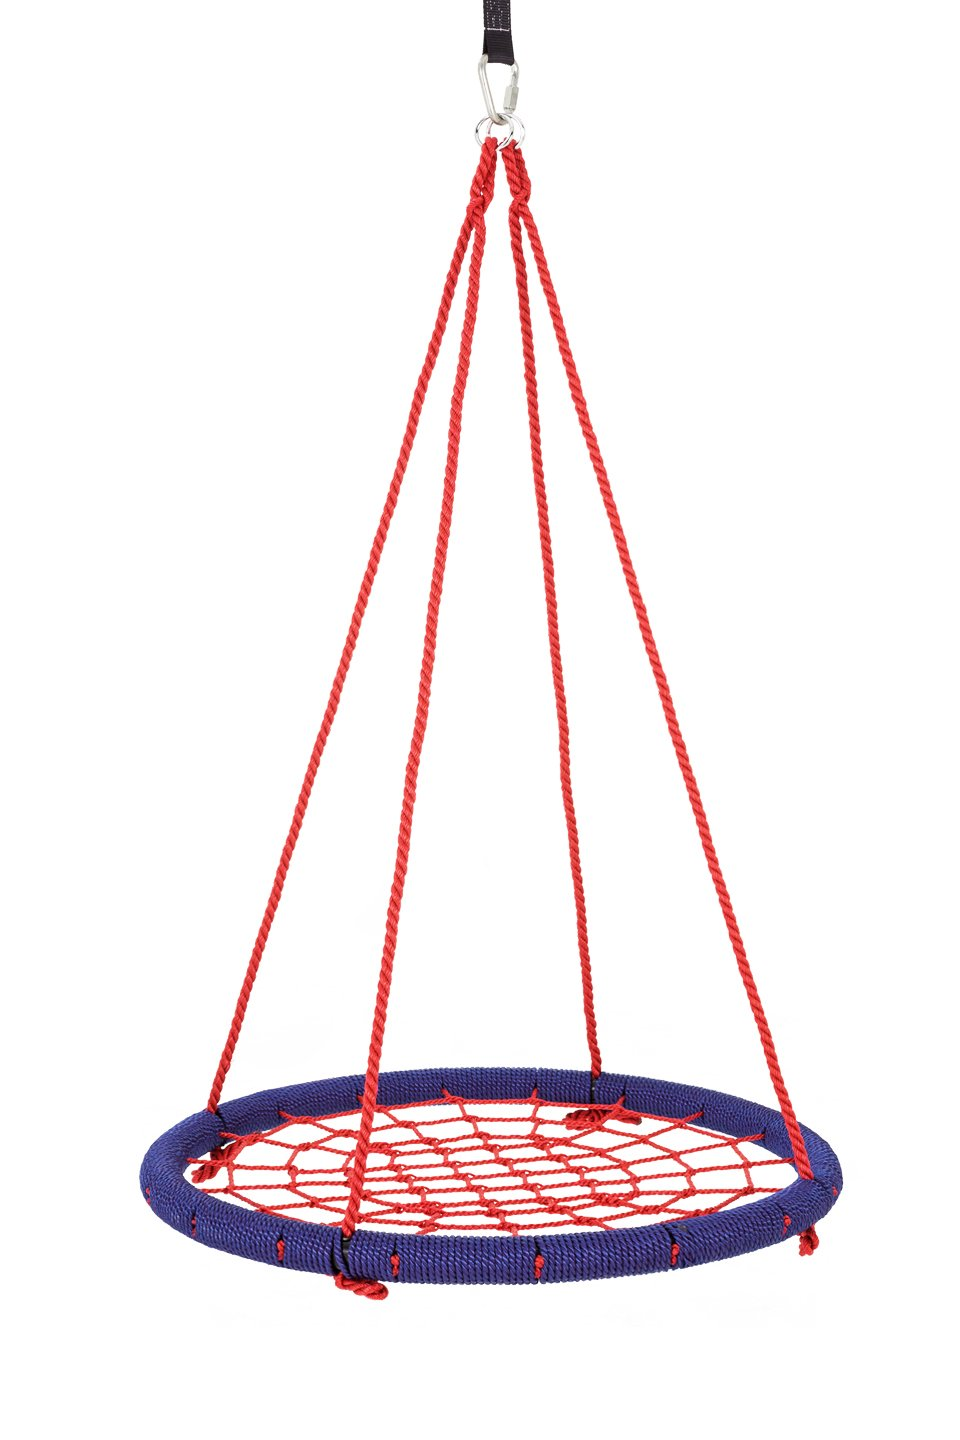 SkyBound Round Tree Swing Nets, Navy Blue/Red, 40''/Large by SkyBound (Image #1)